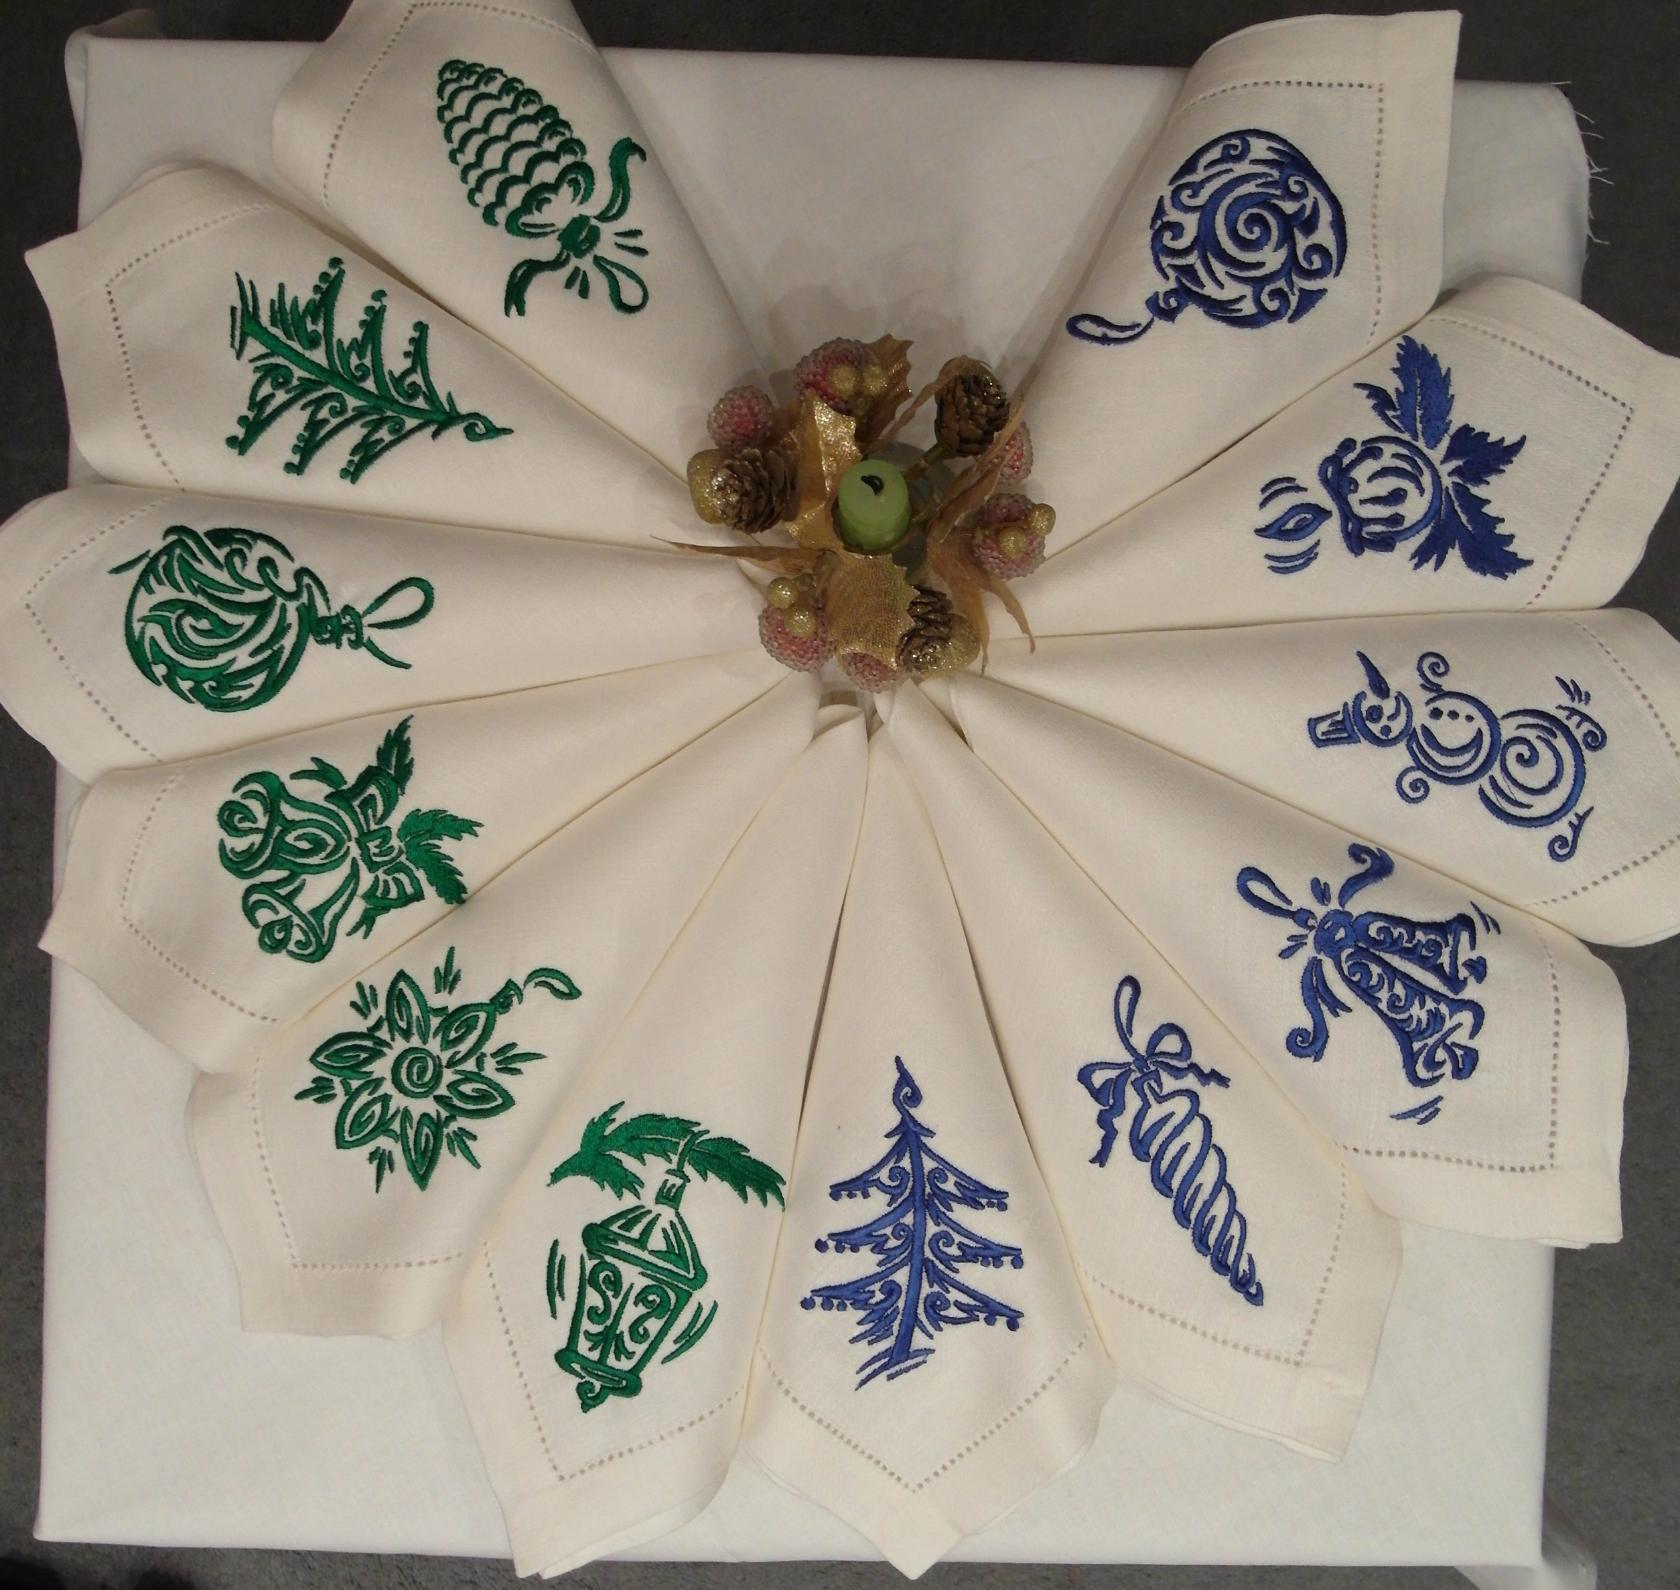 Christmas and NY napkins with green and blue free designs